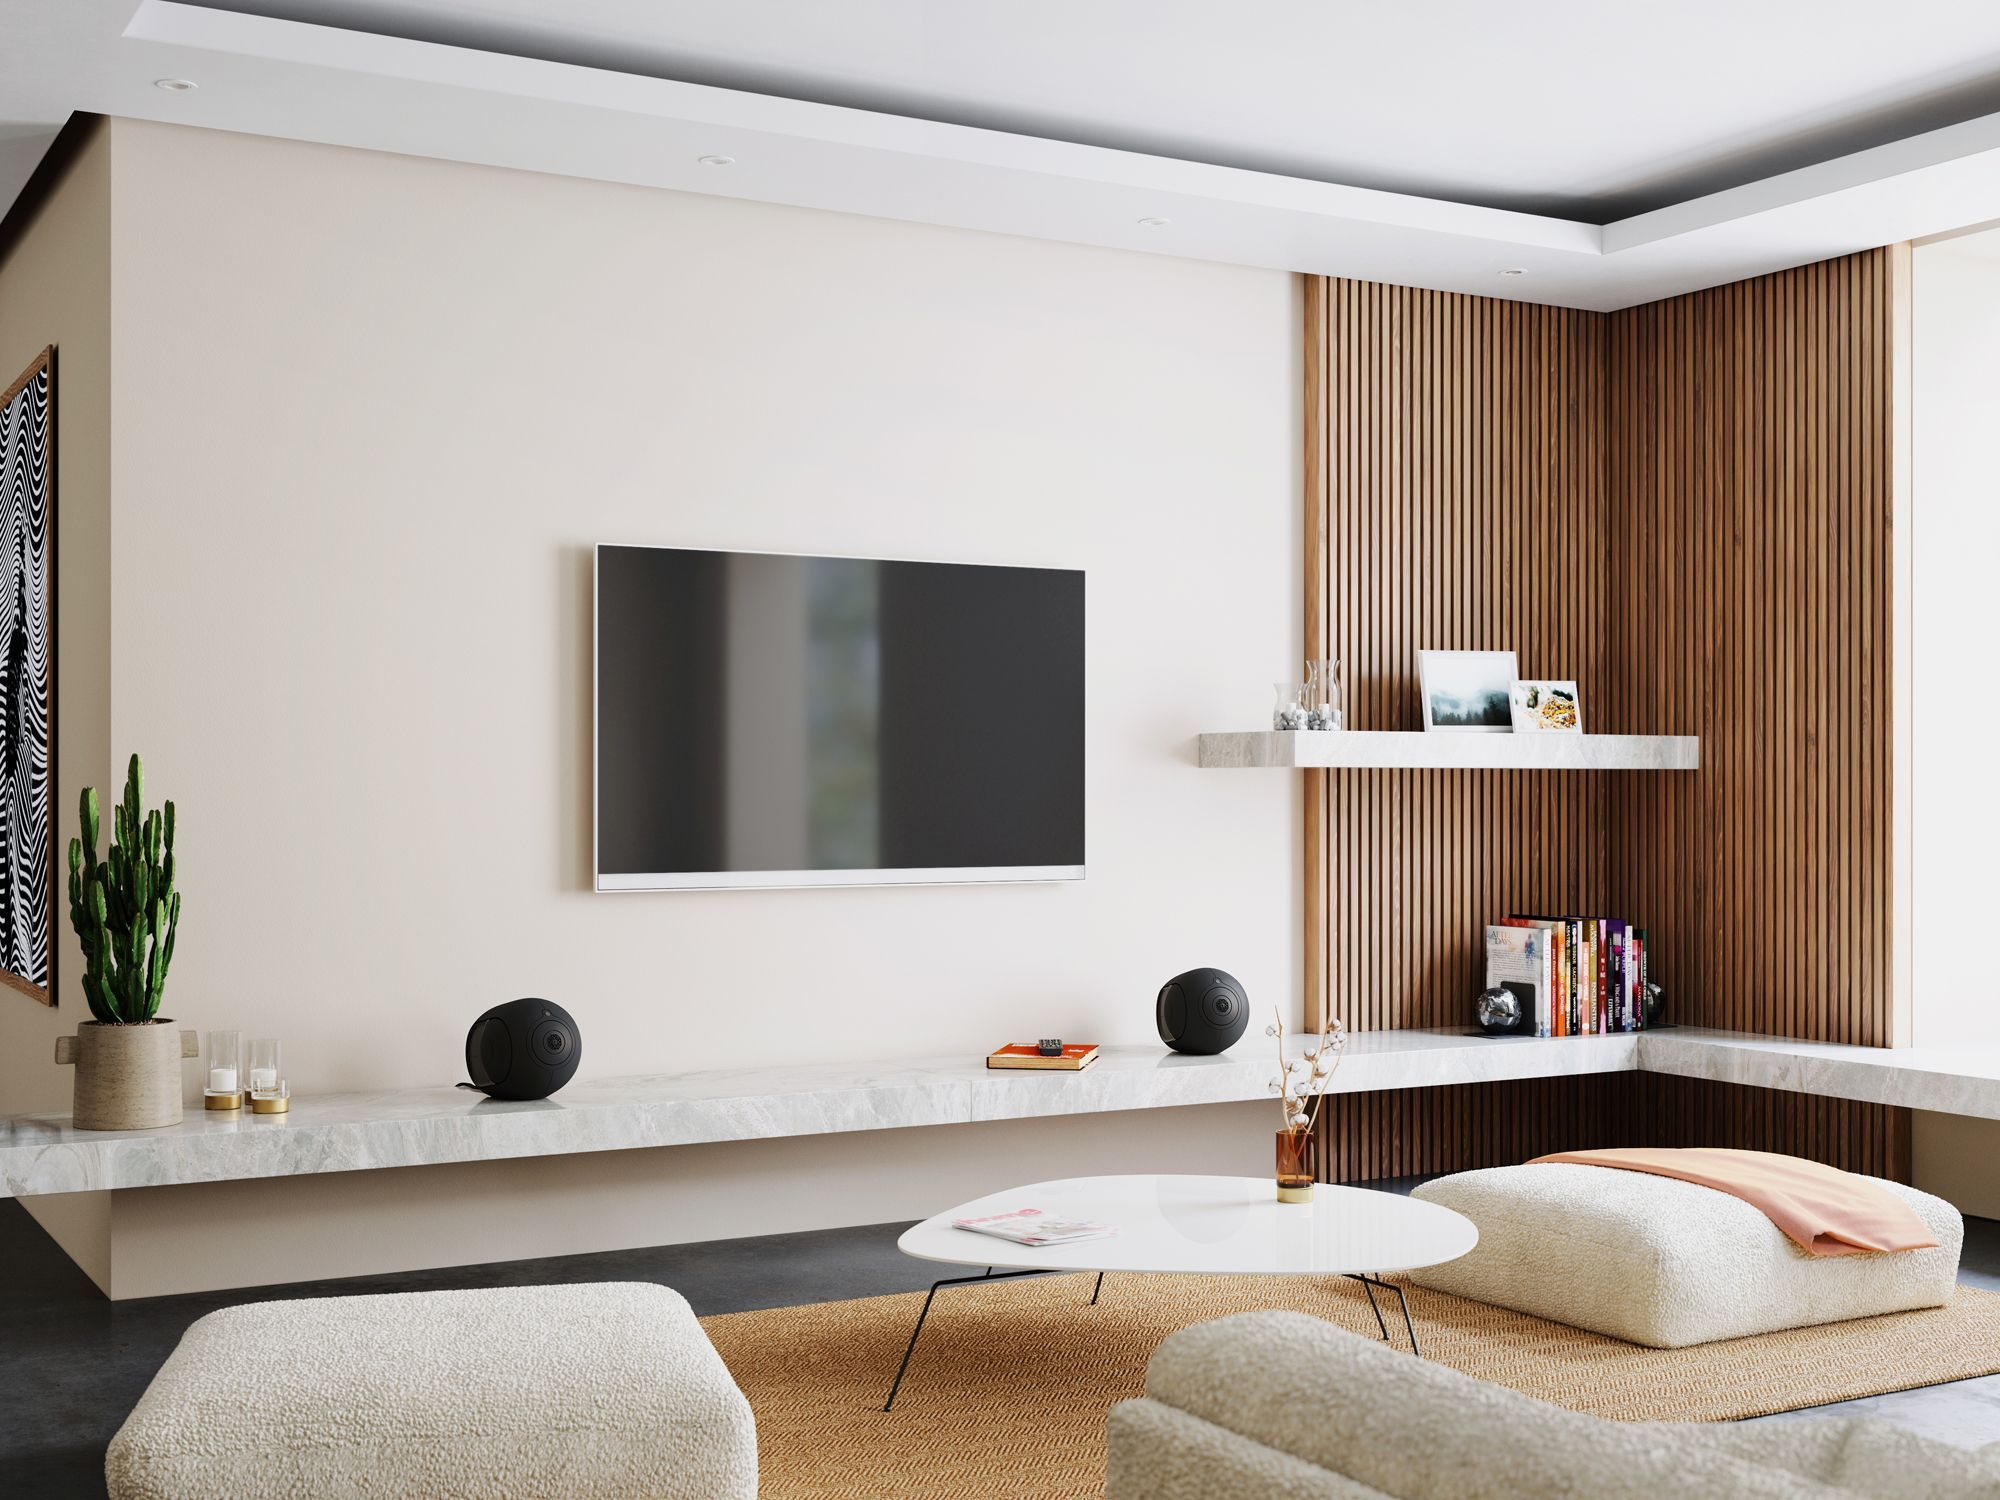 Devialet Phantom I speaker adds a stylish touch to any space with its wireless technology(Image: Devialet)